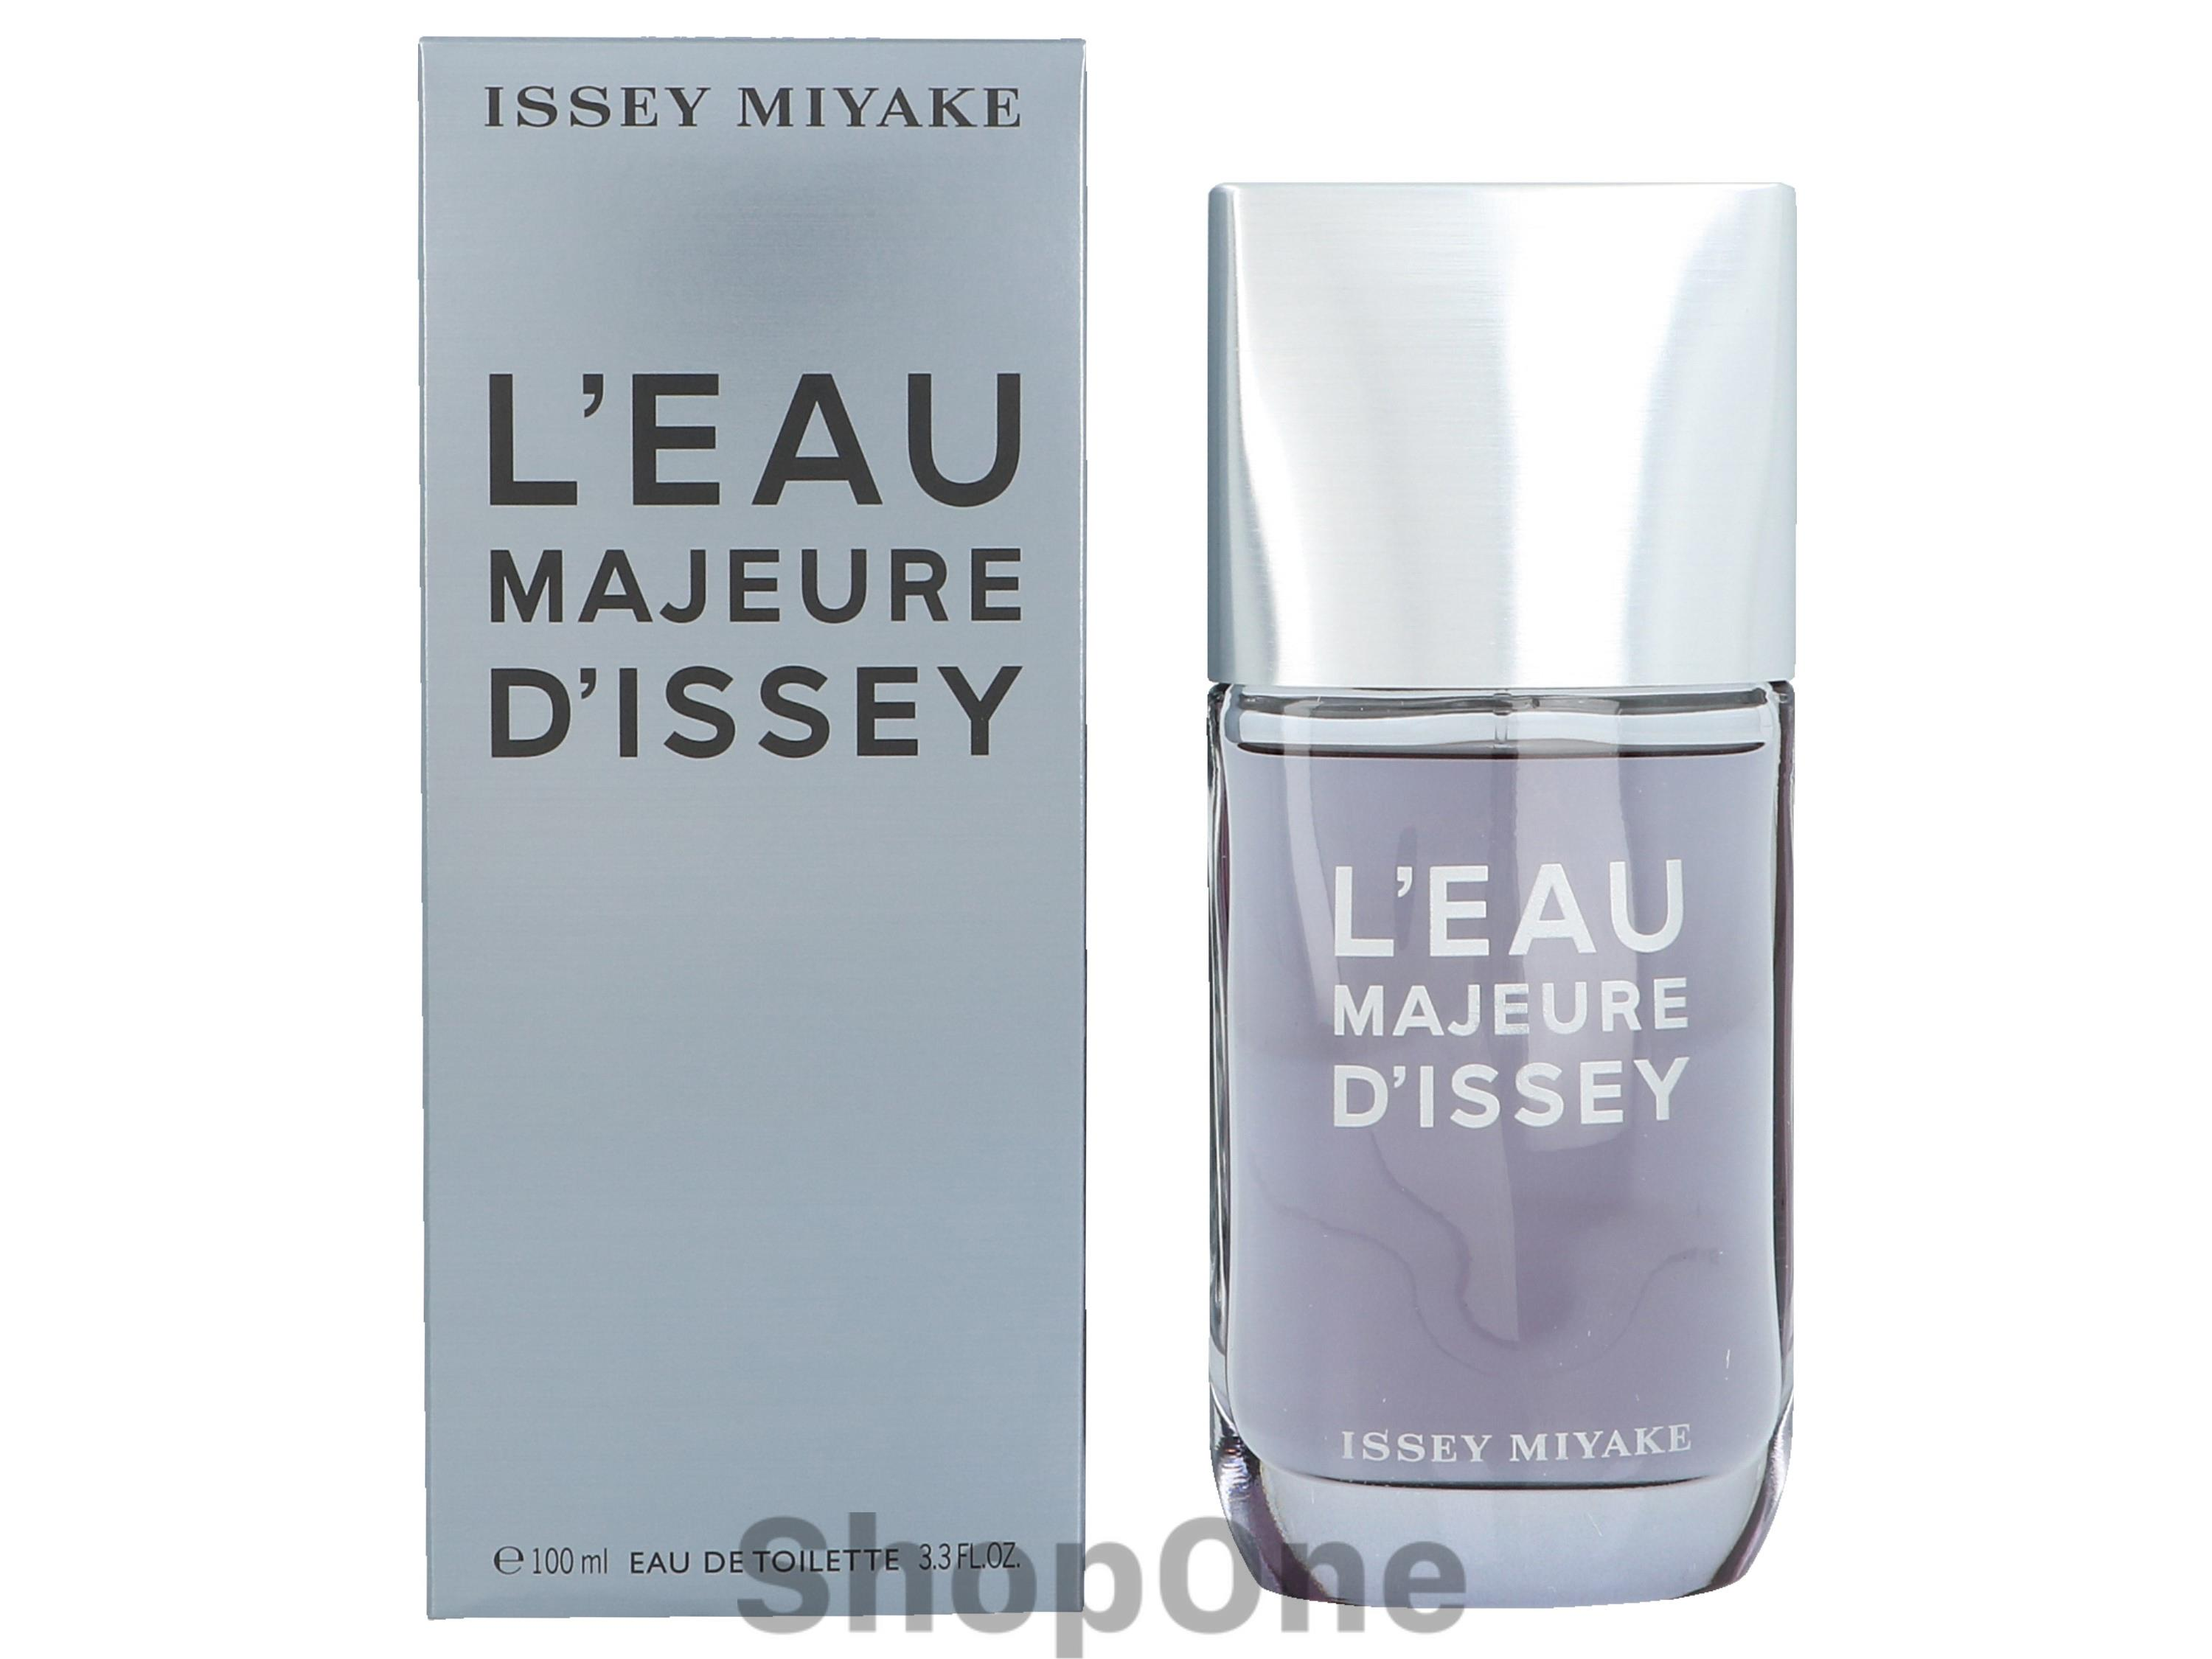 LEau Majeure DIssey Edt Spray 100 ml fra Issey Miyake - Herengeuren Issey Miyake LEau Majeure DIssey Edt Spray 100 ml. Fra Issey Miyake.